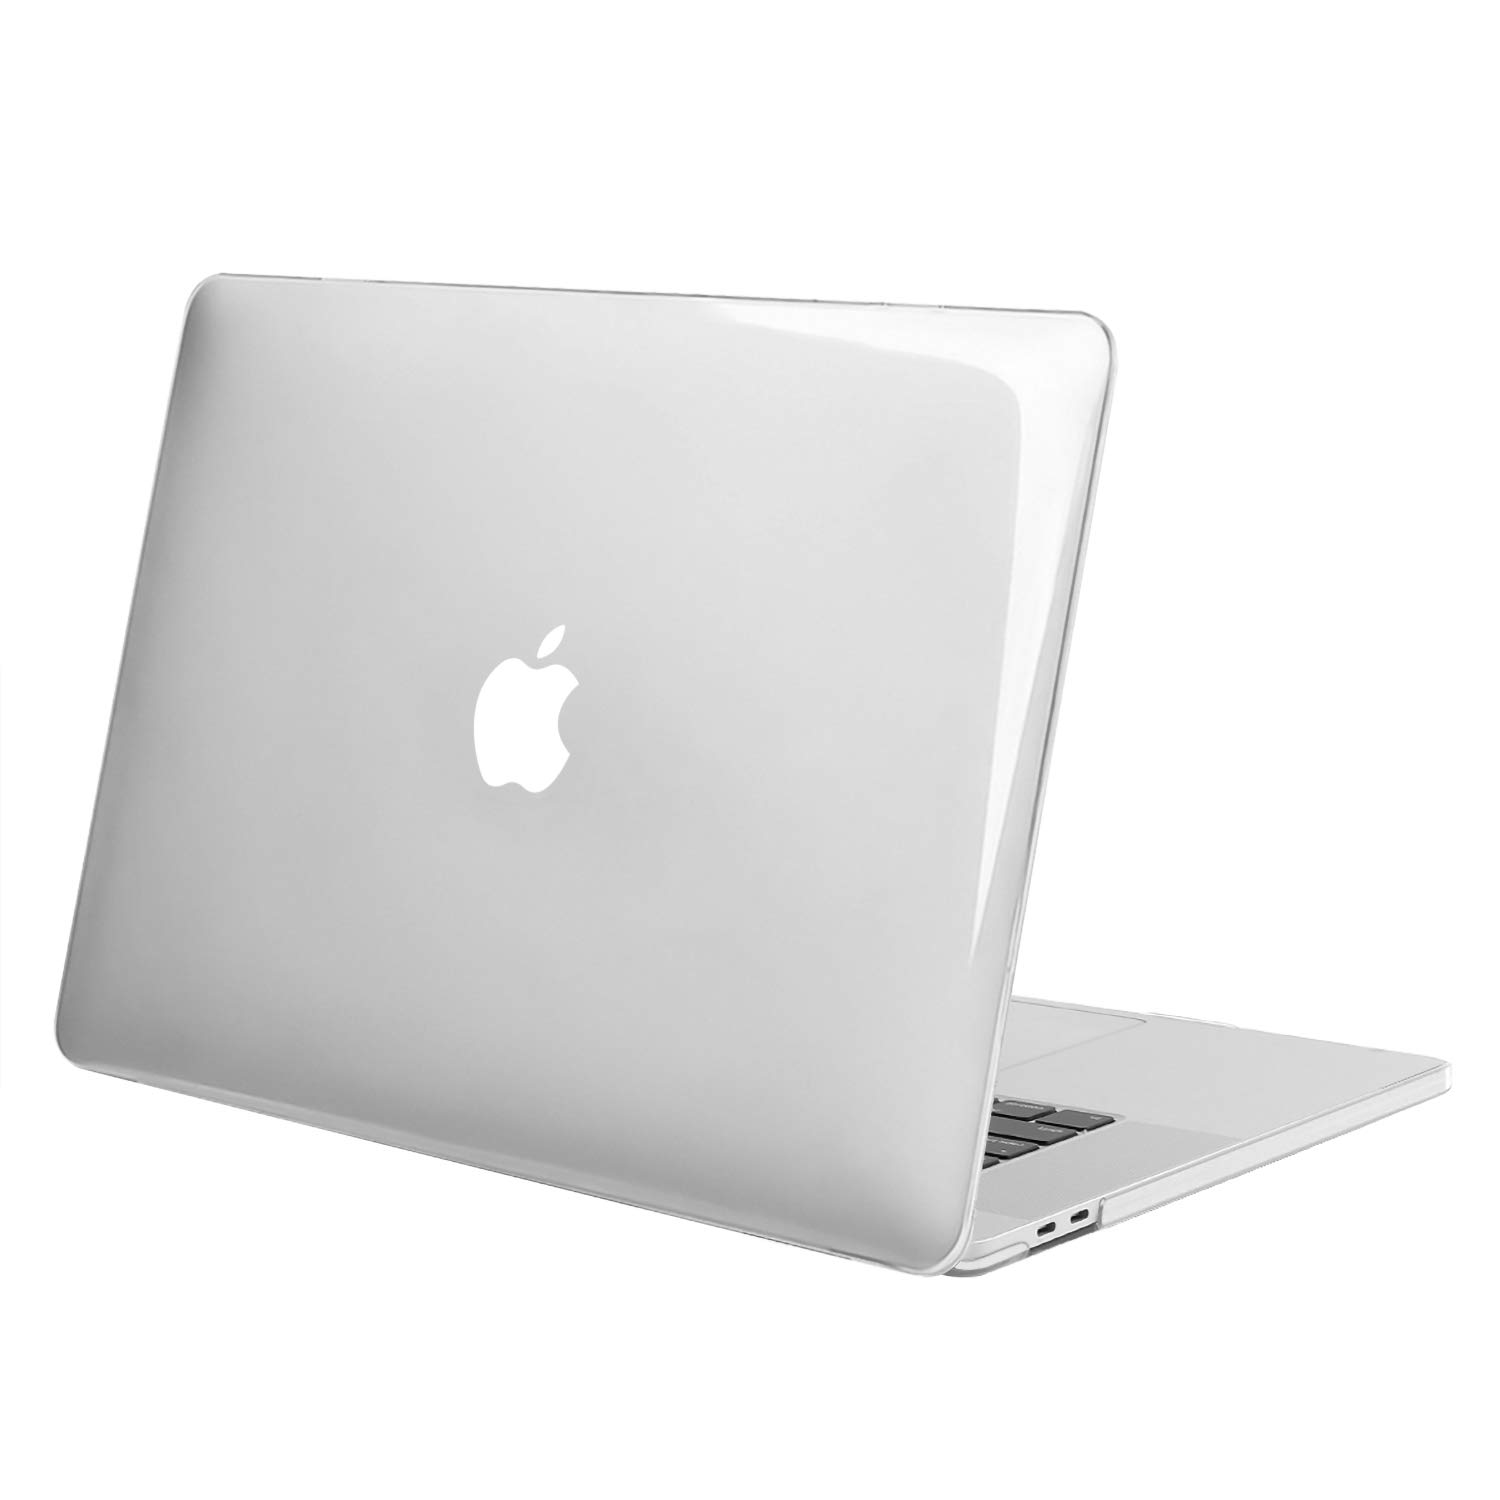 Frosted Clear Cover for MacBook Pro 16 ESR MacBook Pro 16 Inch Case A2141 2019 Release,Hardshell Laptop Case Compatible with MacBook Pro 16-Inch with Touch Bar Slim Snap Case